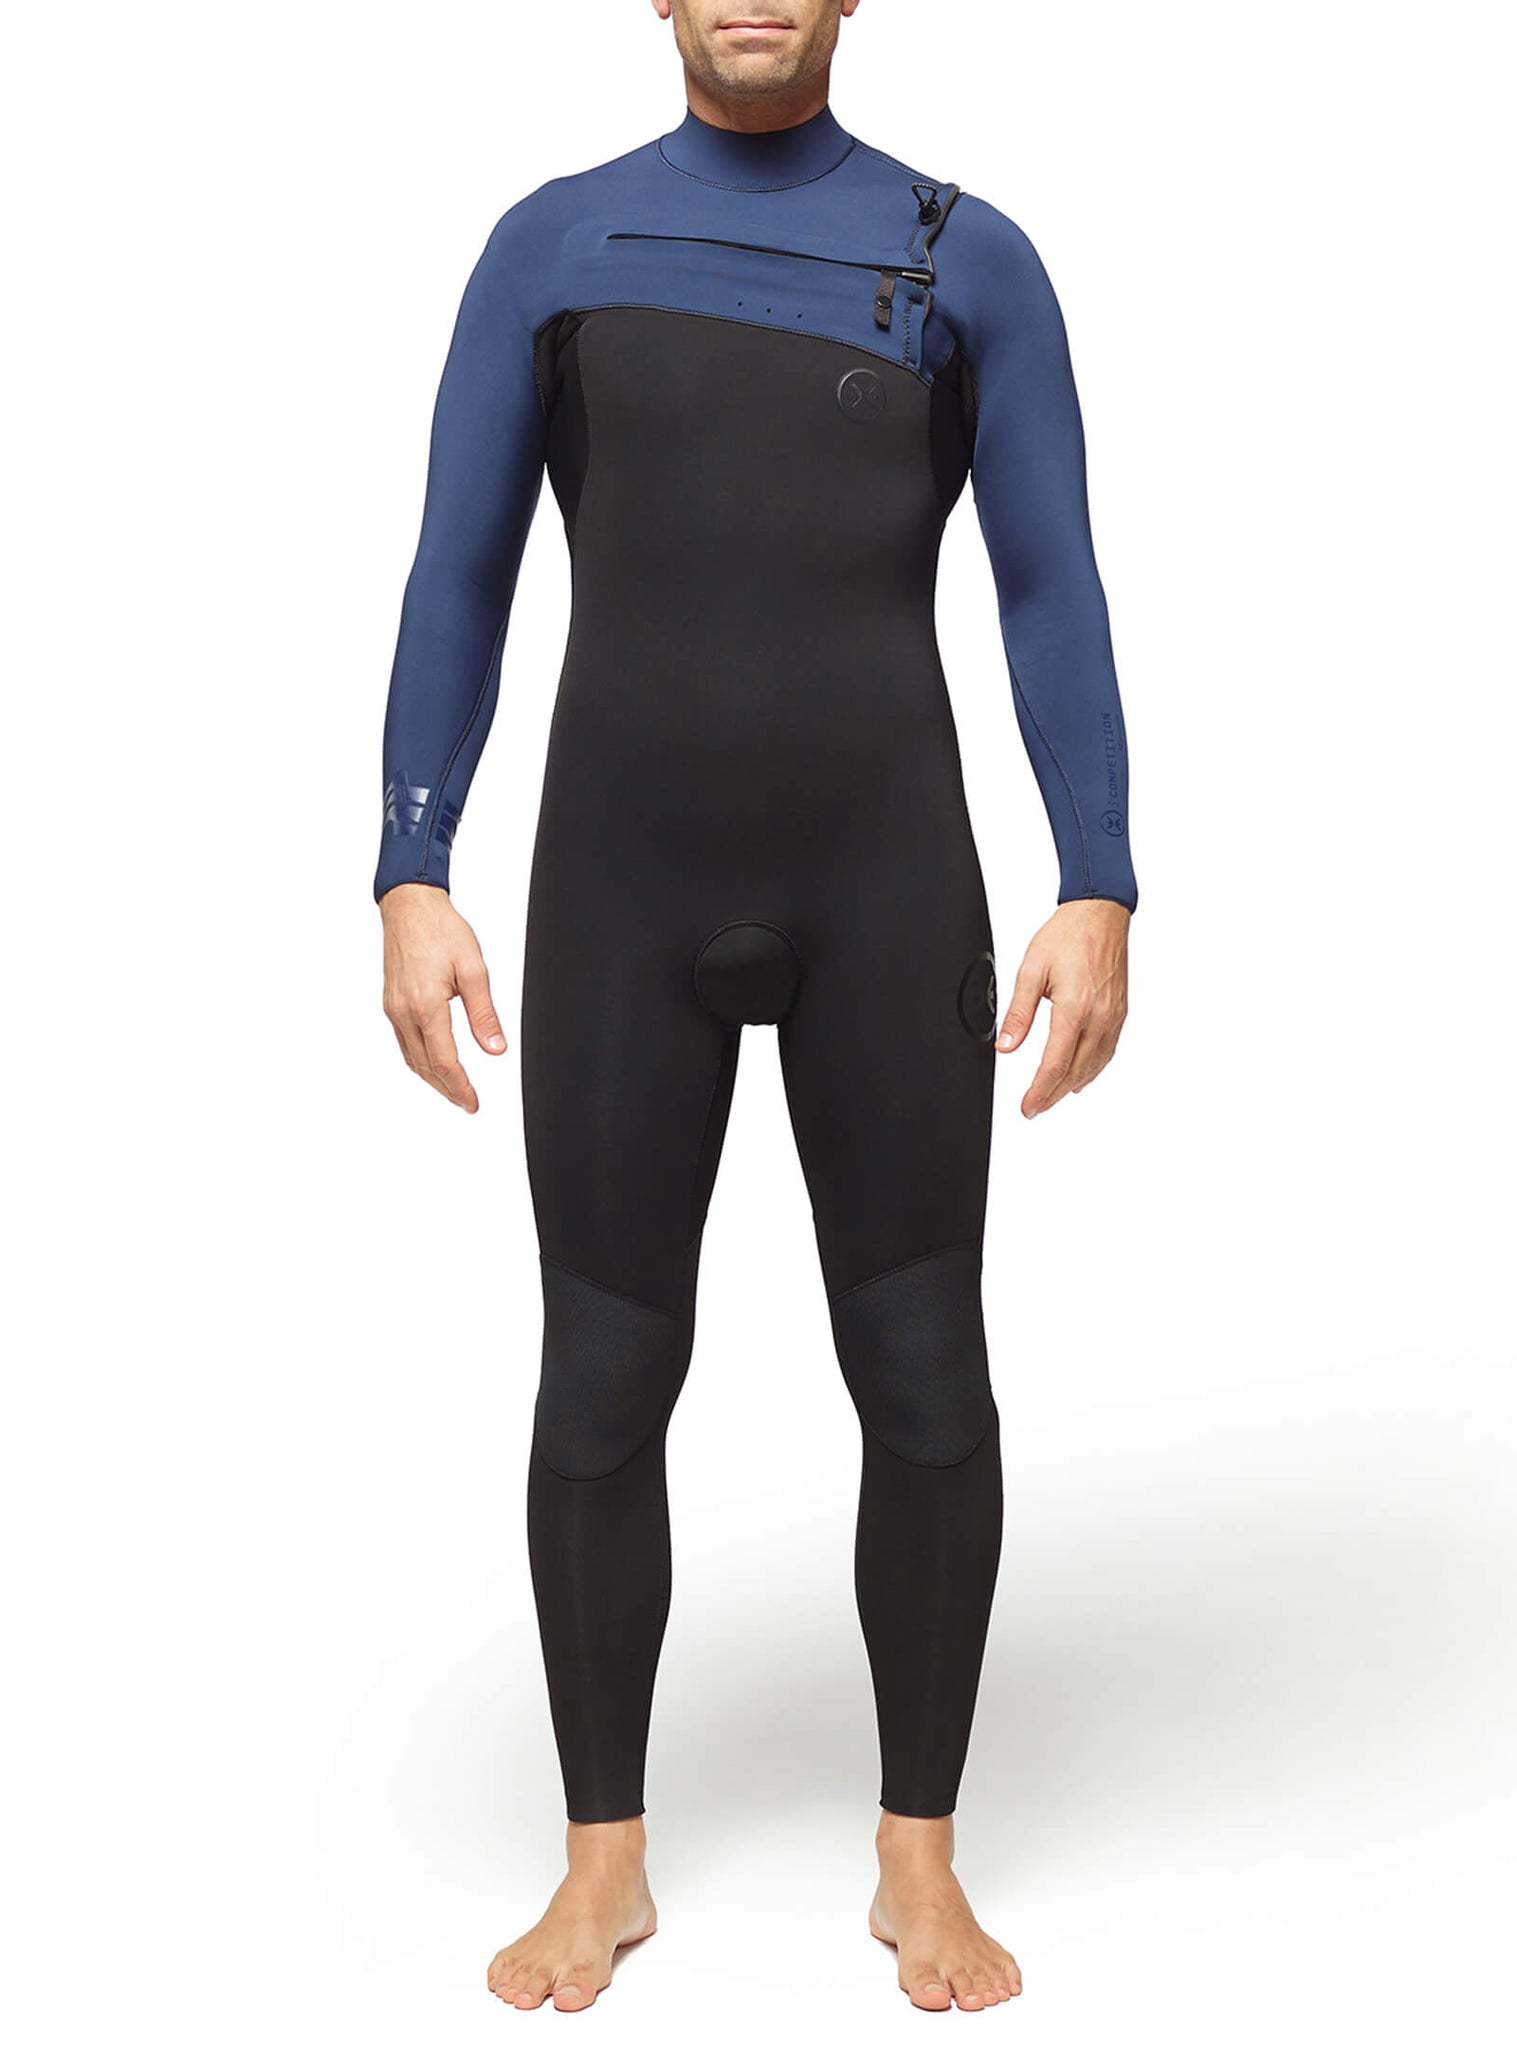 Wetsuit Man Competition 4/3 Chest Zip Blue